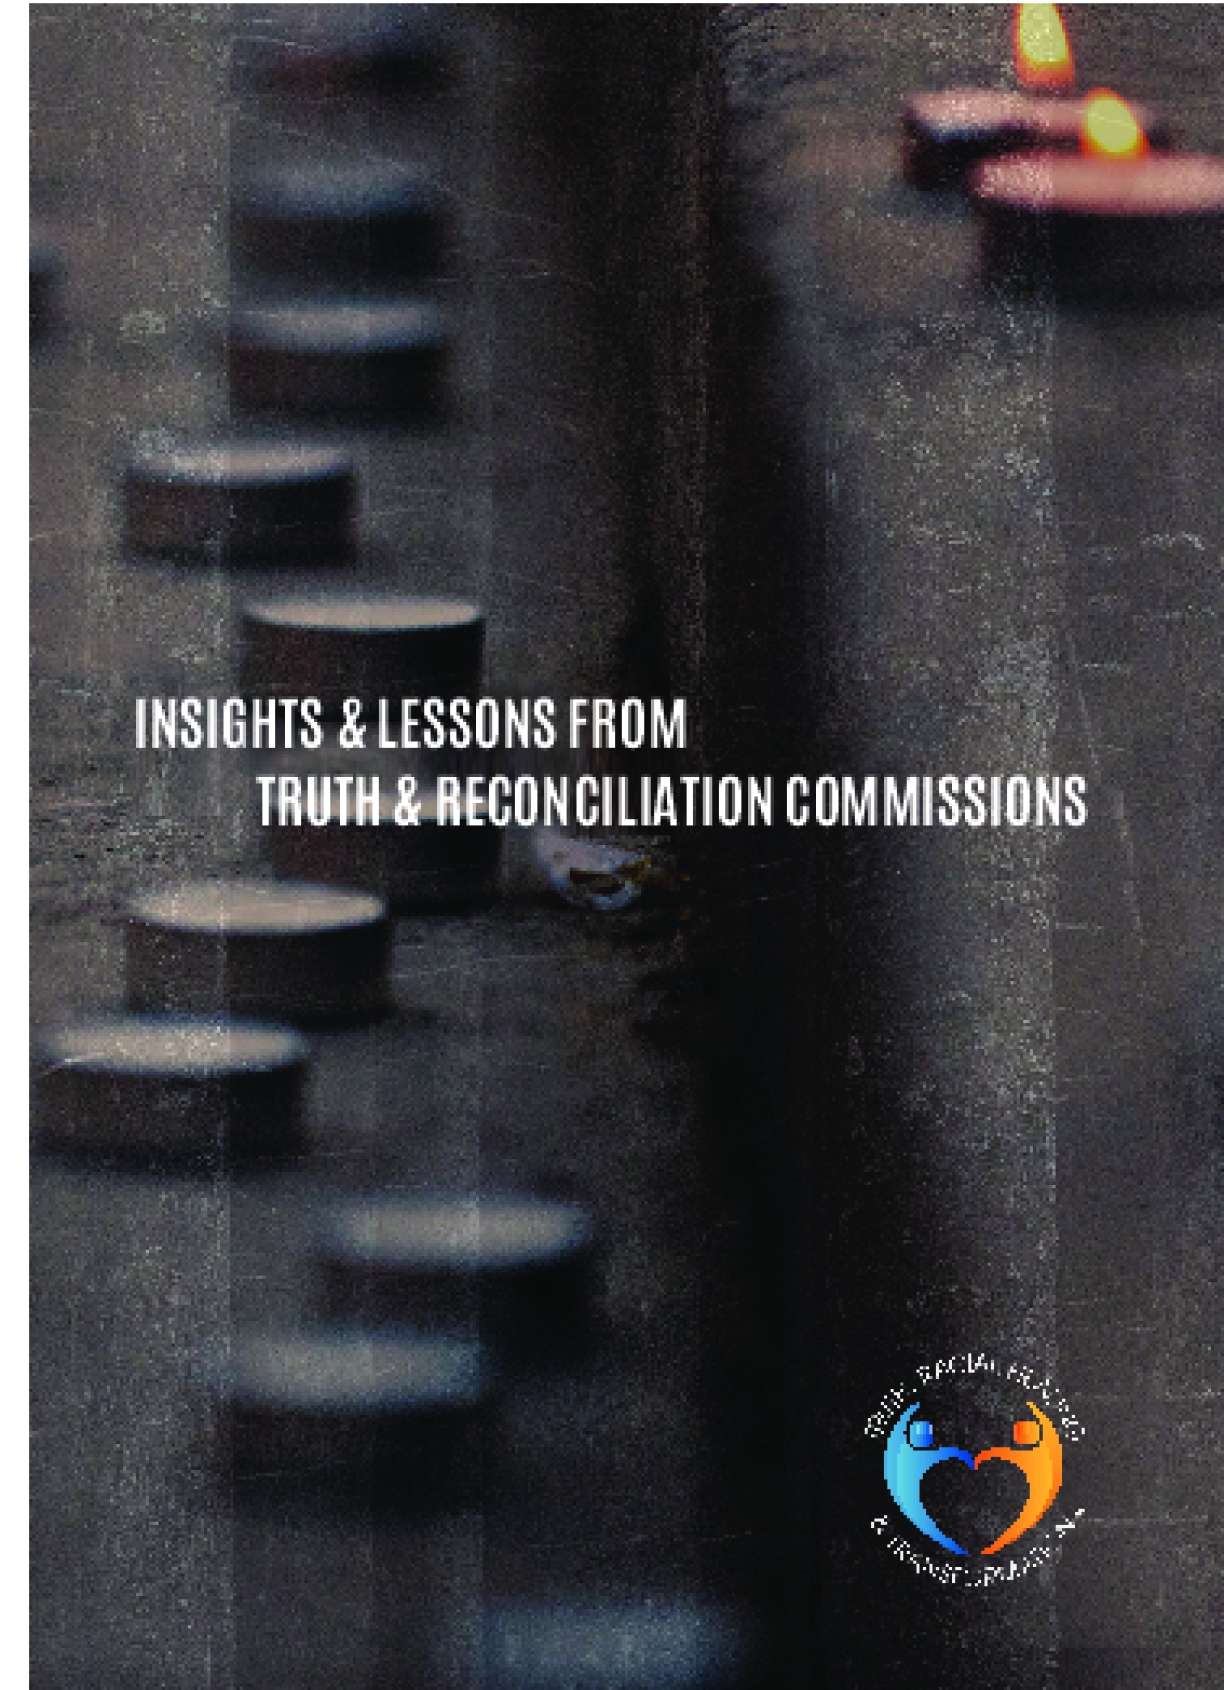 Insights & Lessons from Truth & Reconciliation Commissions